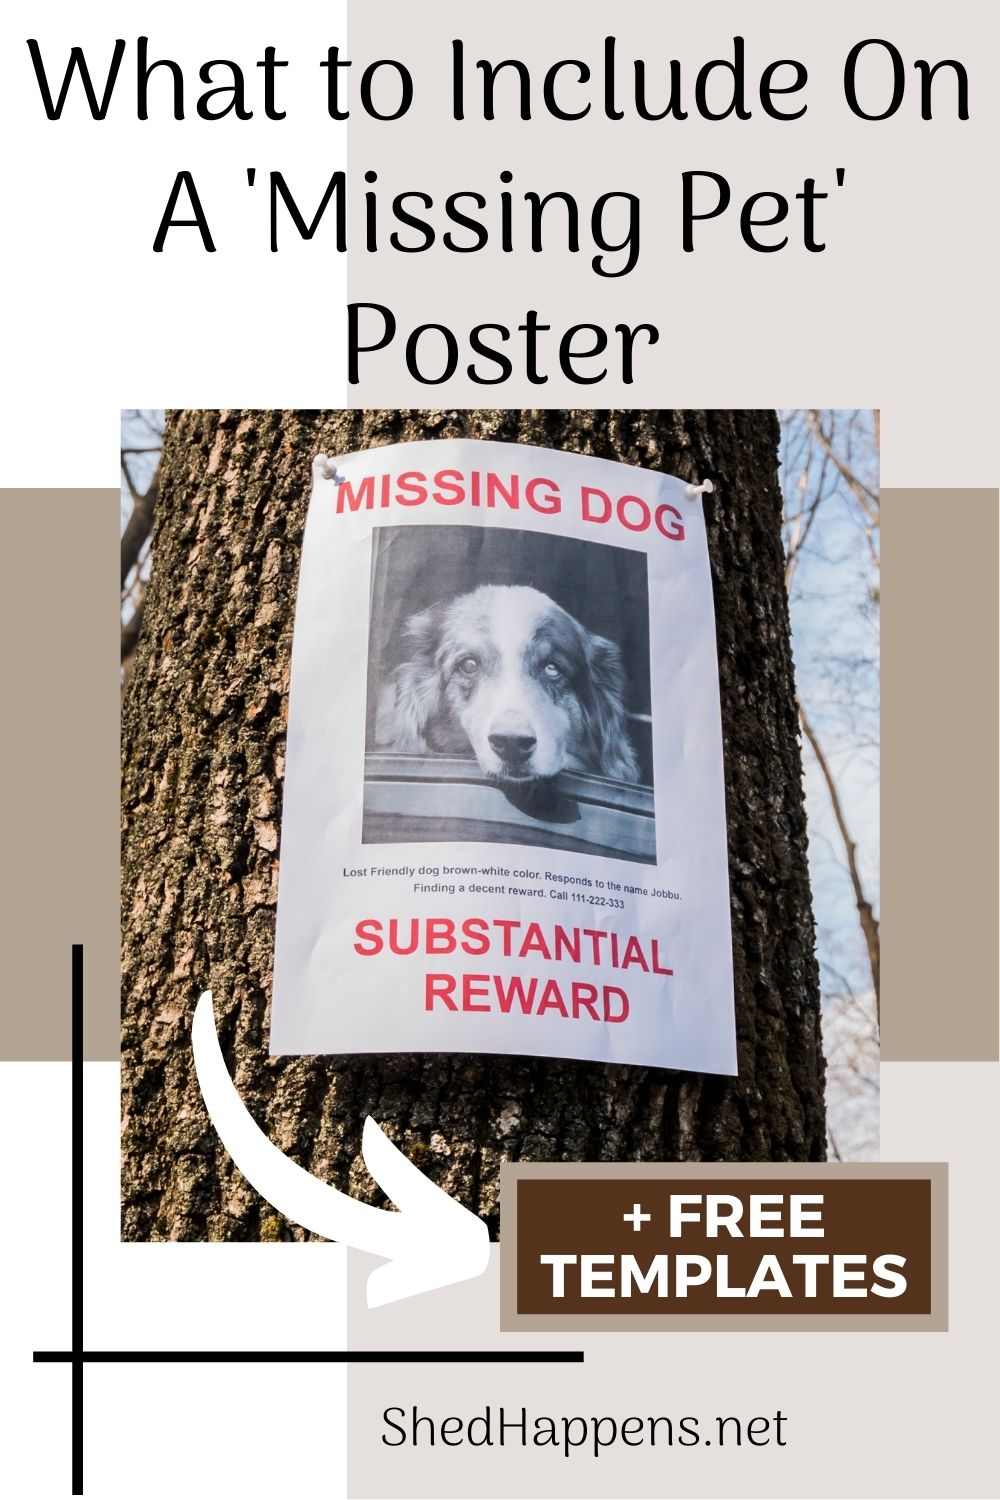 A 'missing dog' poster with red text and a black and white photo of a dog tacked up on a tree trunk. The text states what to include on a missing pet poster.